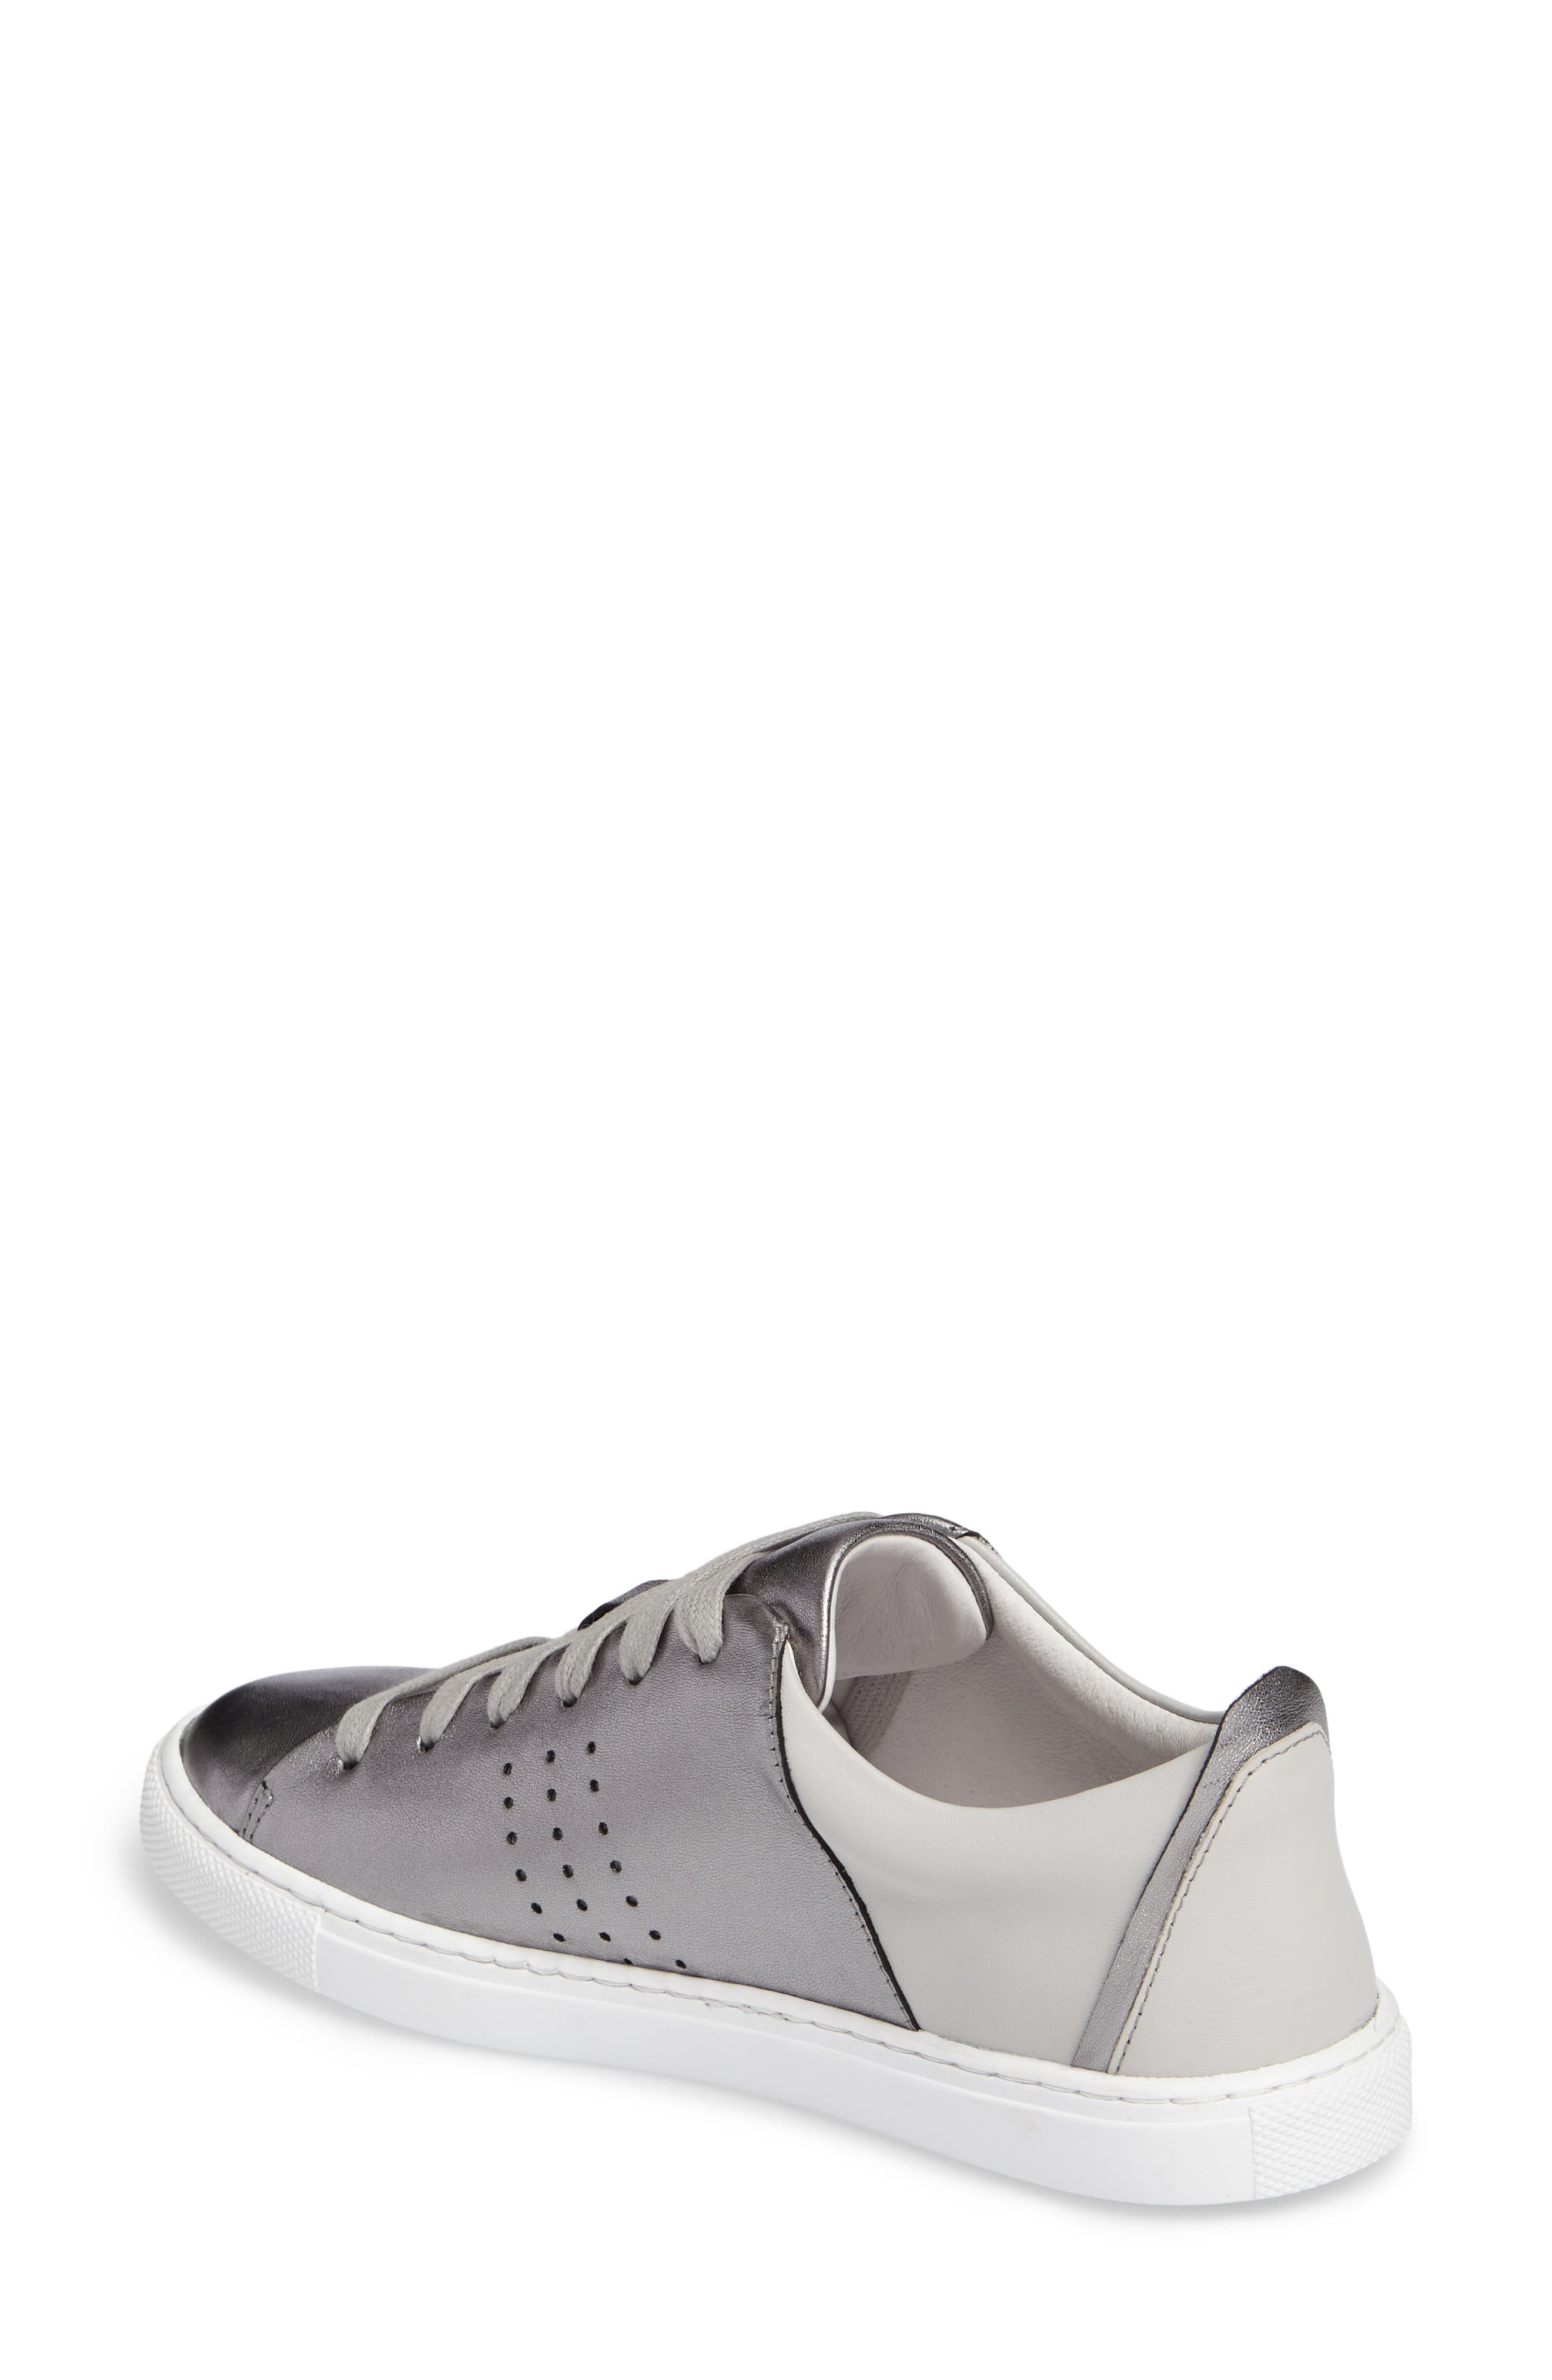 Splits Two-Tone Perforated Sneaker,                             Alternate thumbnail 2, color,                             045